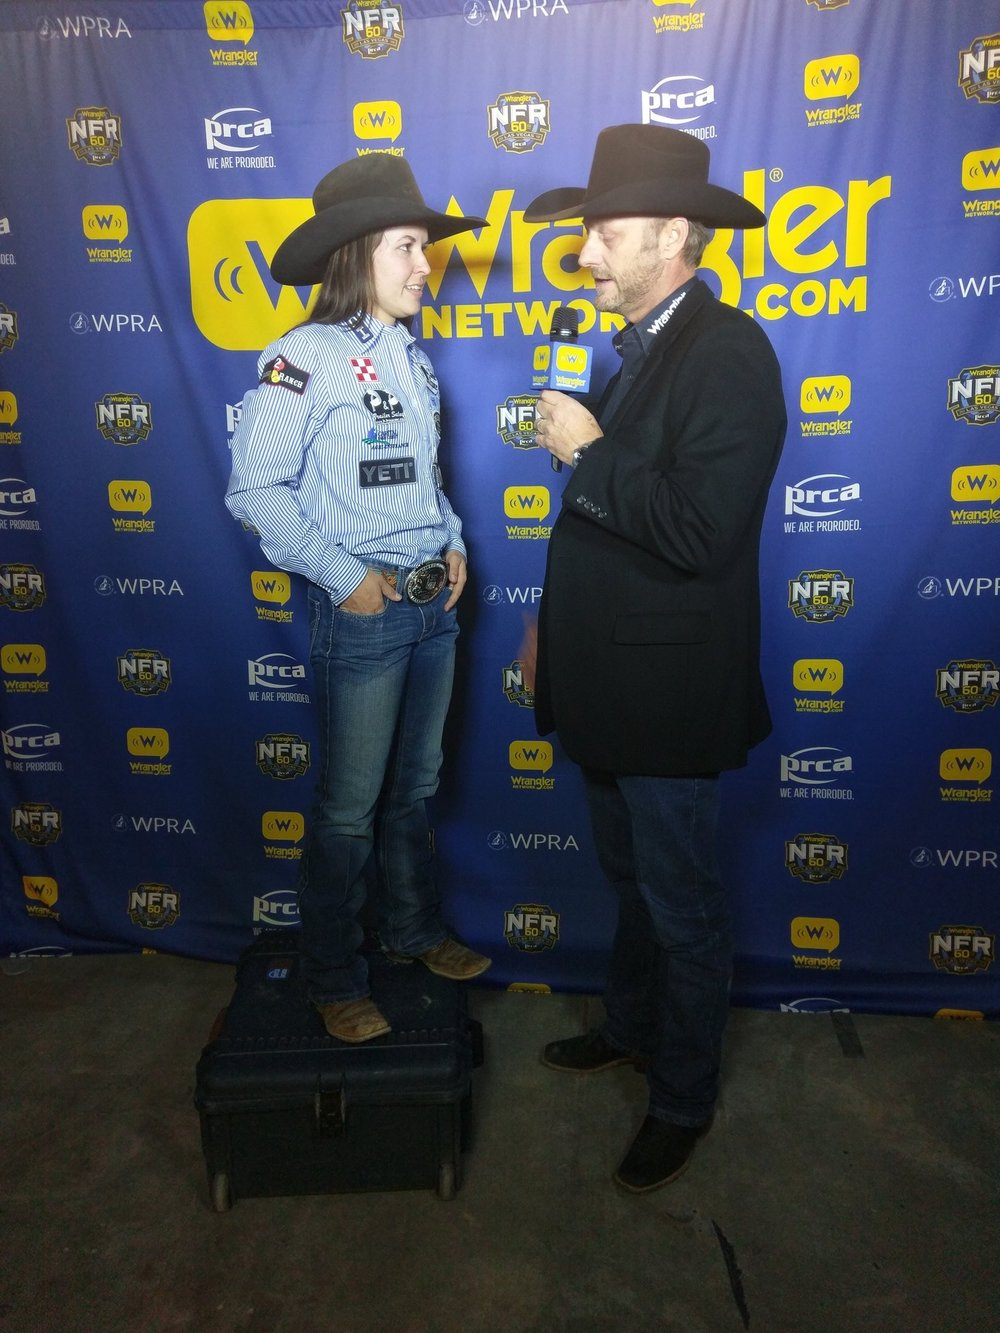 Hailey standing on something while being interviewed at the 2018 WNFR because she's a tiny human. So cute though…